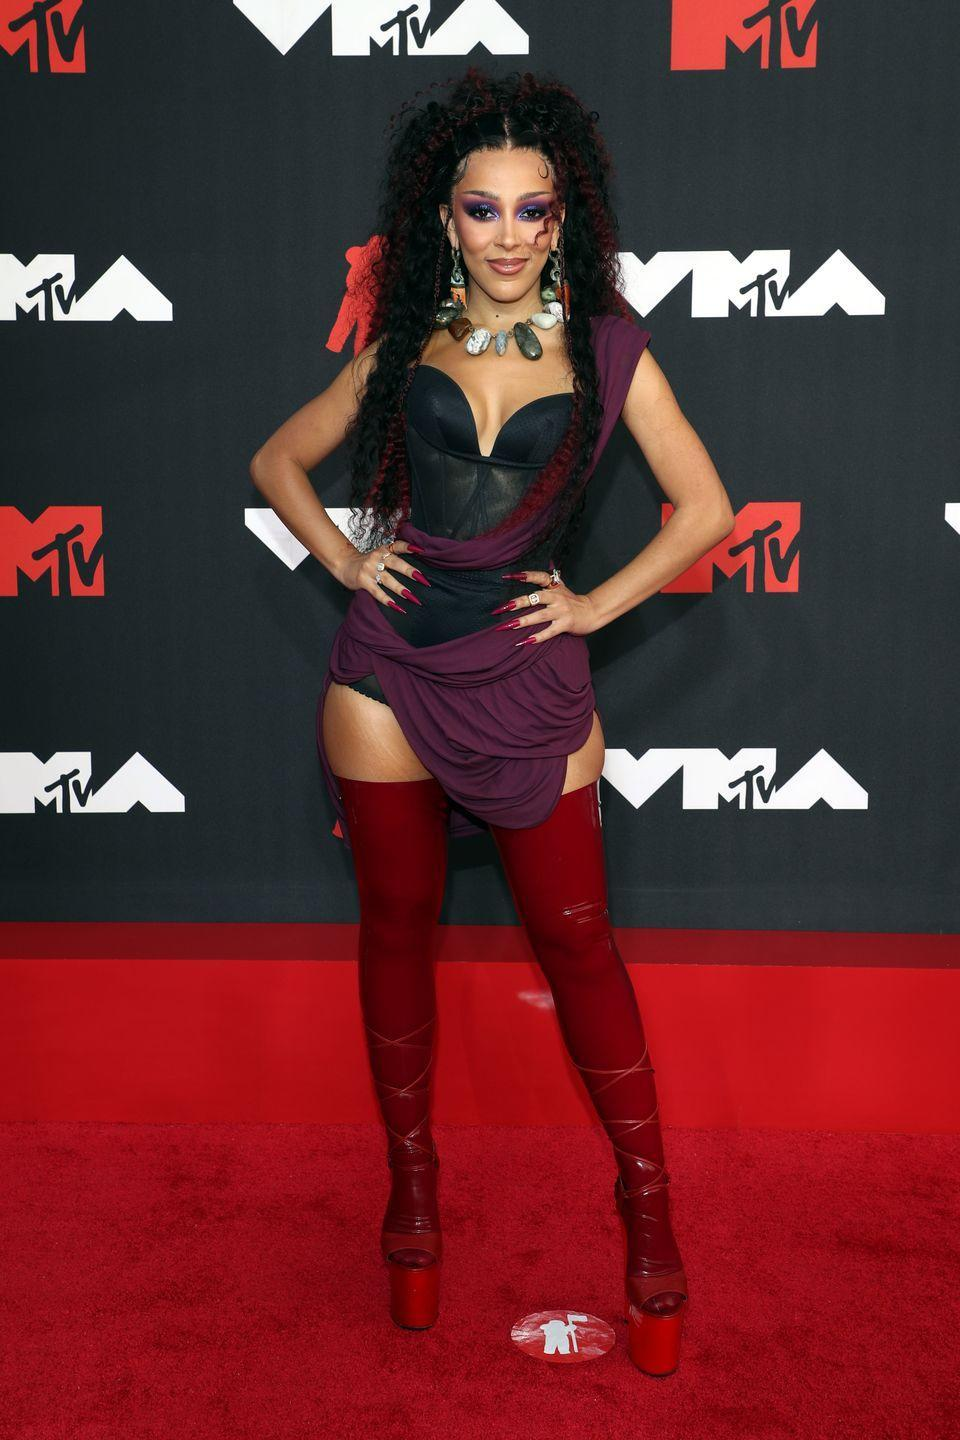 <p>Host Doja Cat slayed in a black and maroon bodysuit and statement red over-the-knee platform boots. She accessorized with a stone-beaded necklace and wore matching red hair streaks. </p>